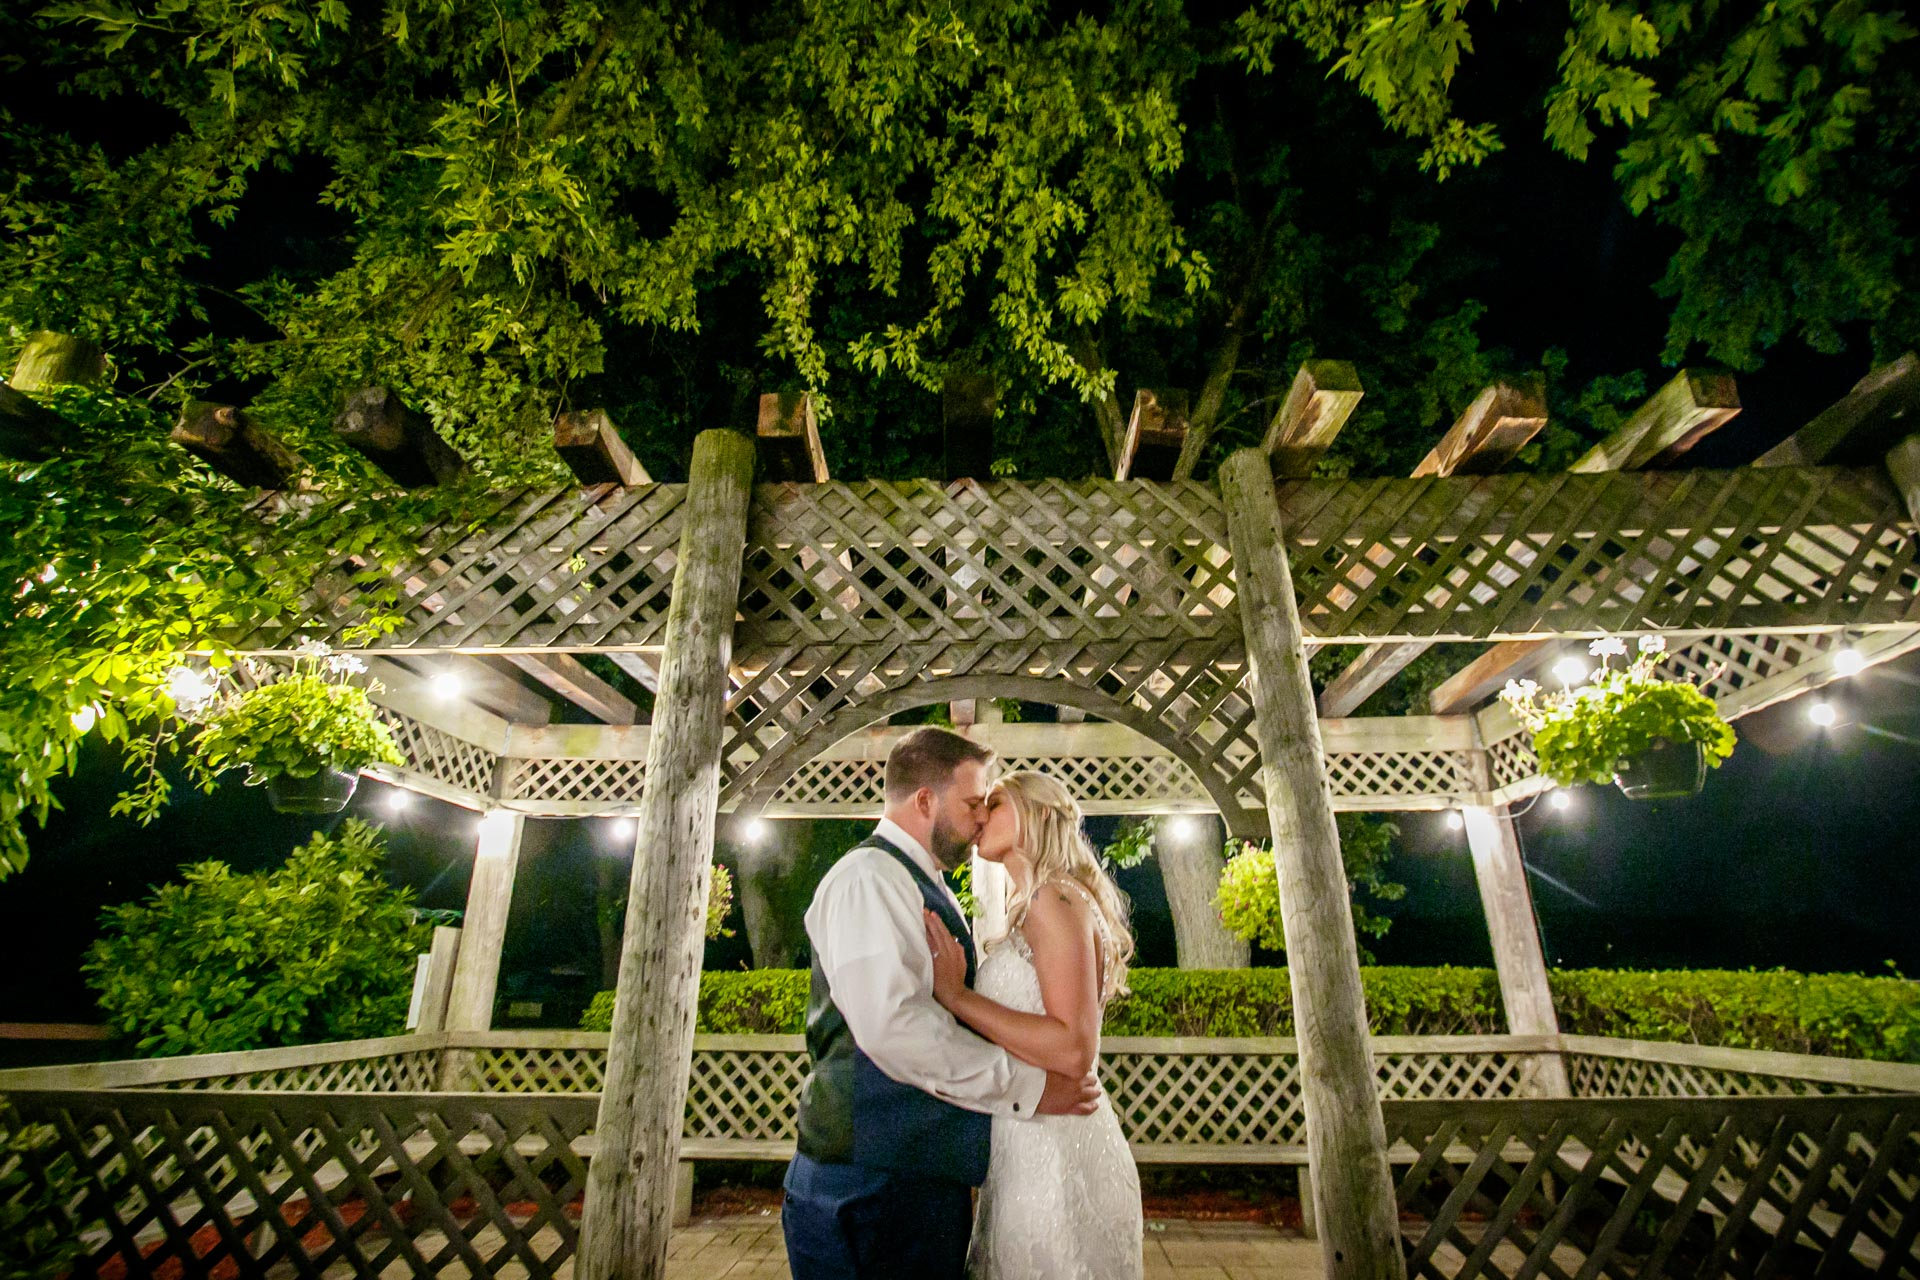 Rachel and John were married in high style at the   Aud Mar Banquet Hall   in Muskego, Wisconsin. These two enjoyed perfect weather on their wedding day and even got a ride on a pontoon boat after their ceremony. Photographs provided by   Adam Shea Photography  .